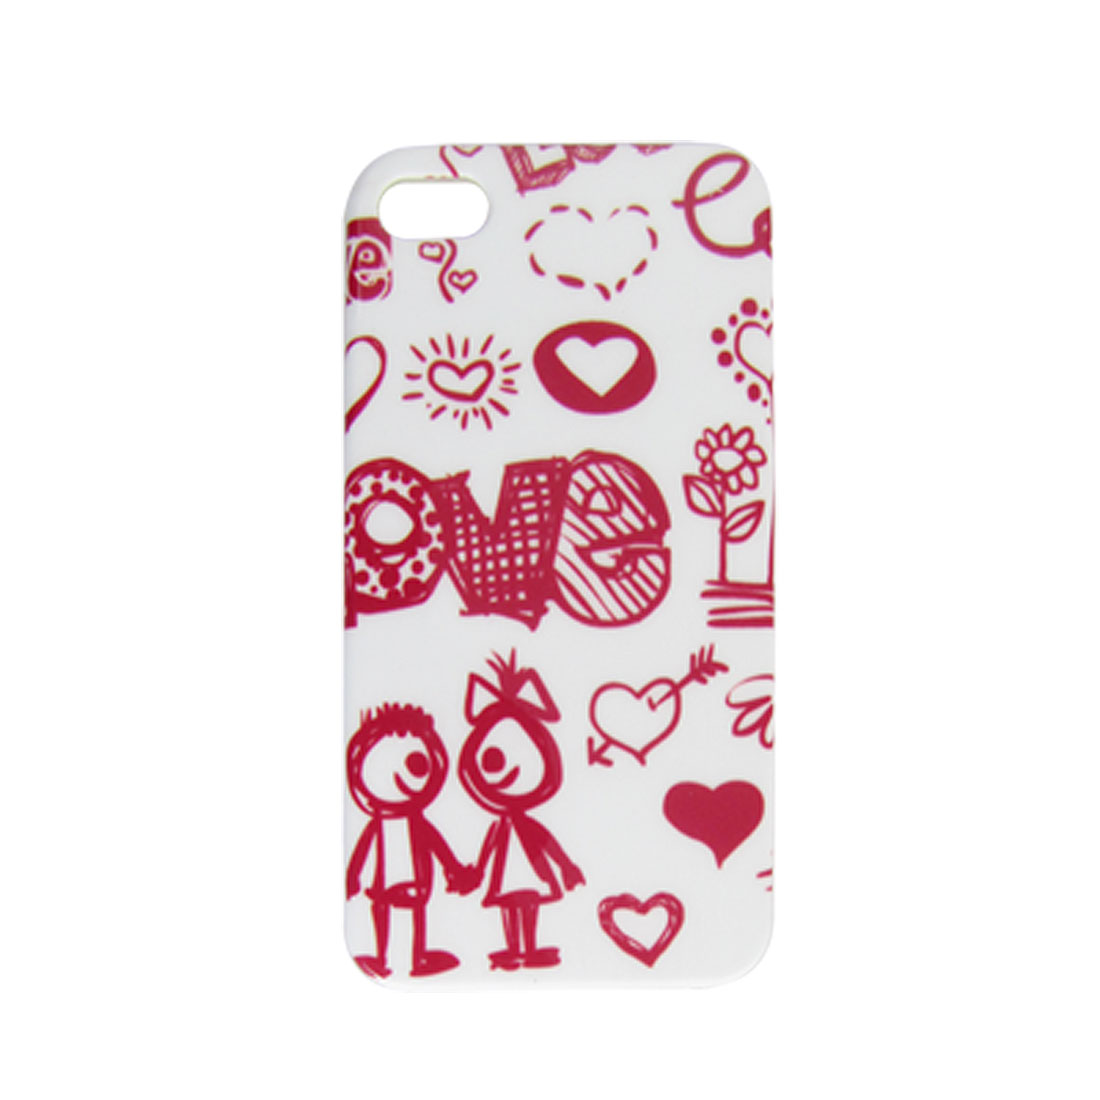 Heart Flower People Pattern Hard Plastic IMD Back Case for iPhone 4 4G